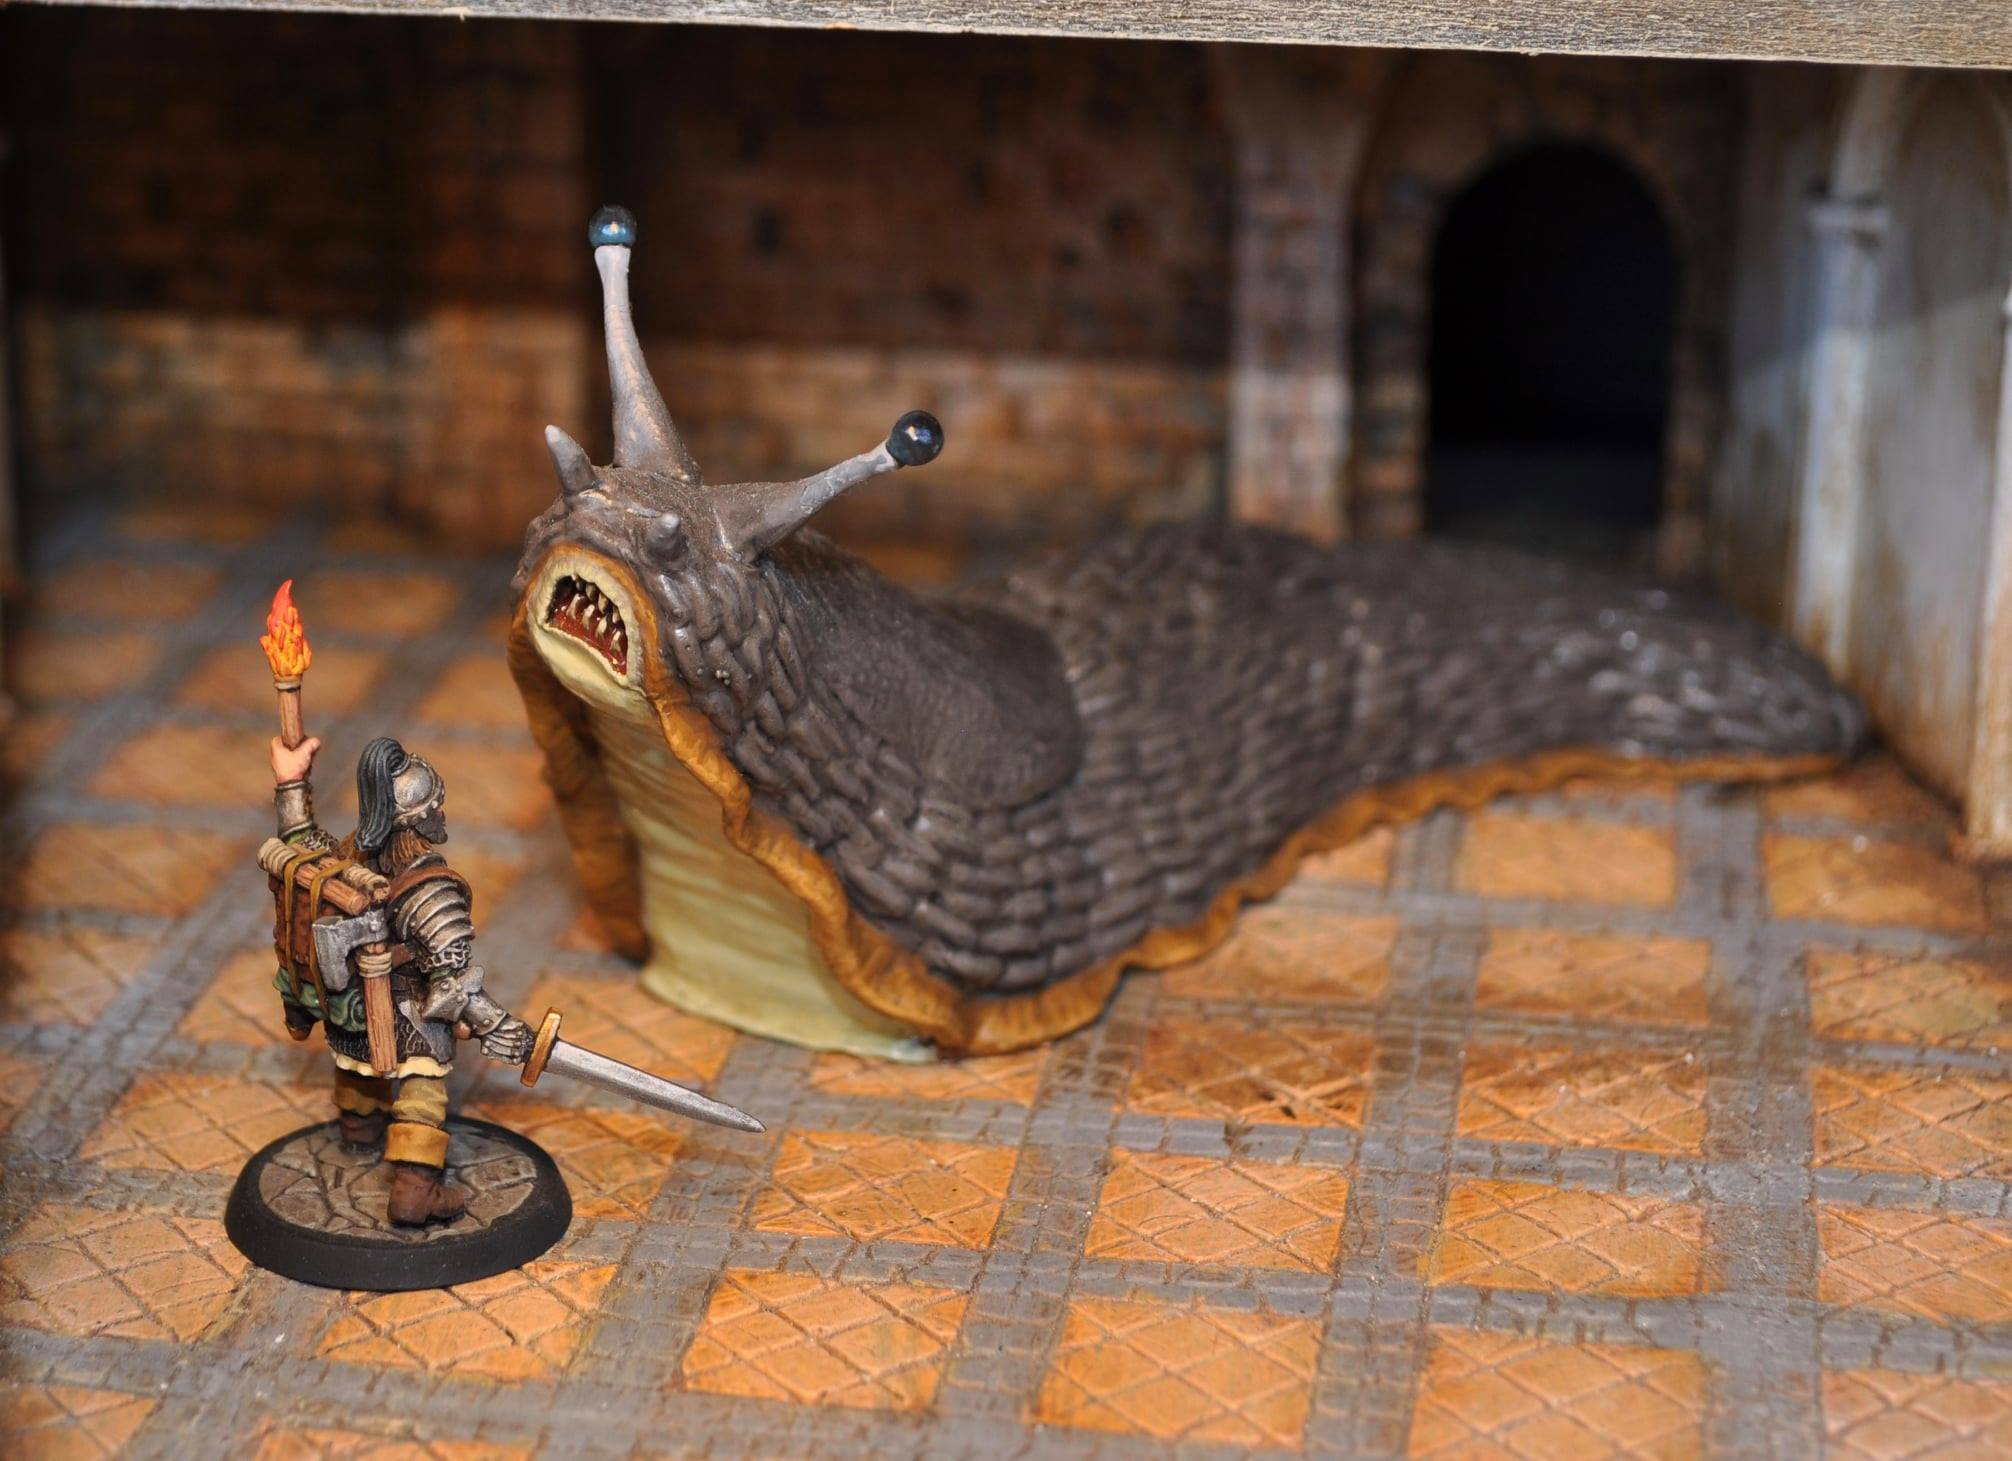 Remastered Giant Slug - Otherworld Miniatures